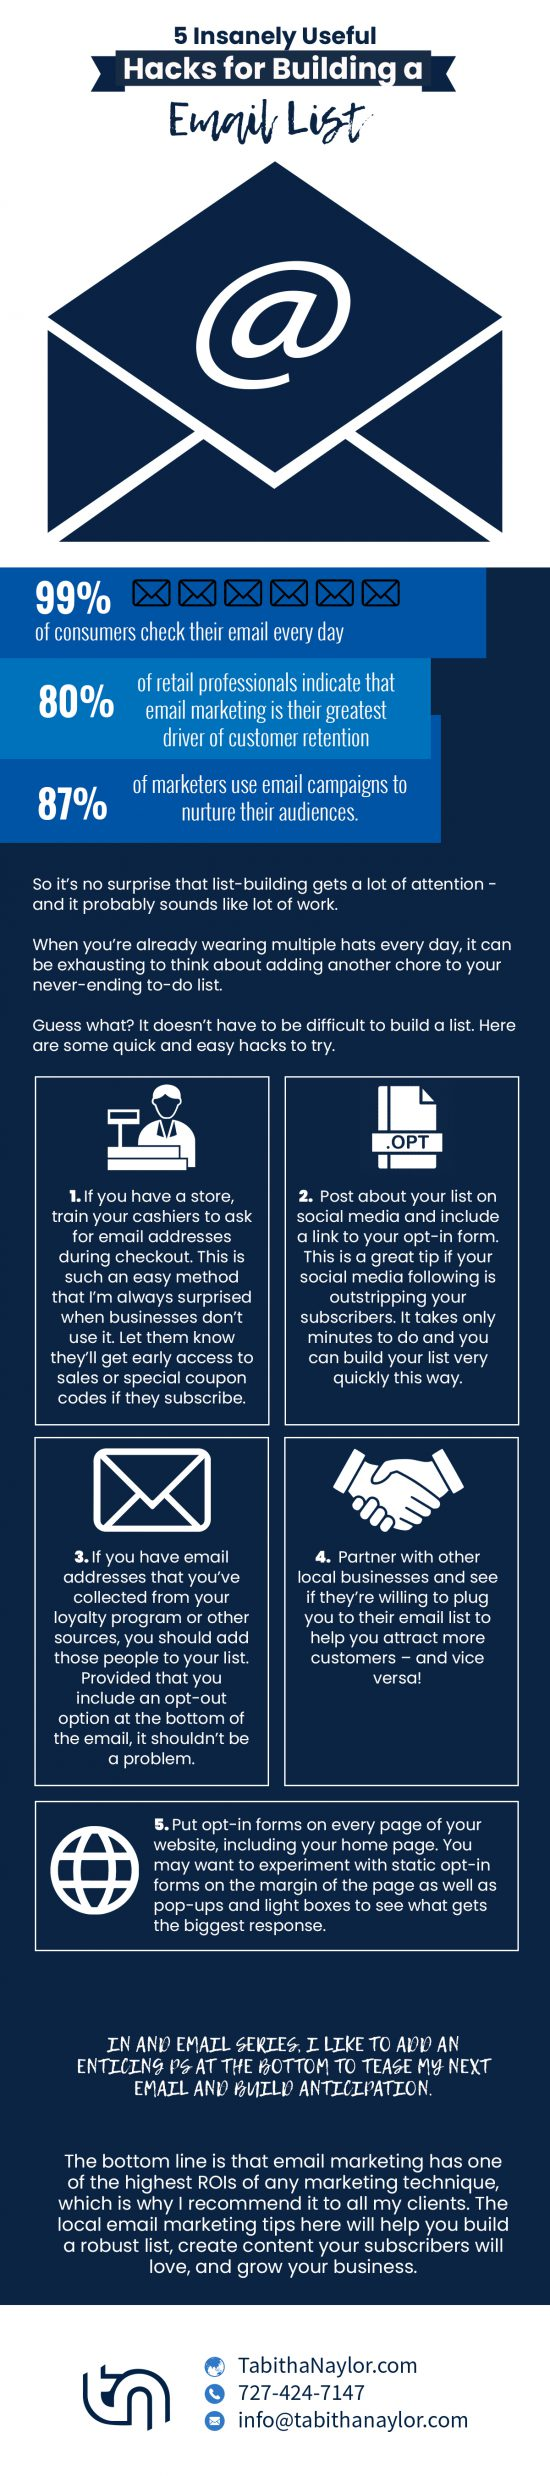 Proven-Local-Email-Strategies-to-Try-infographic-version-550x2476